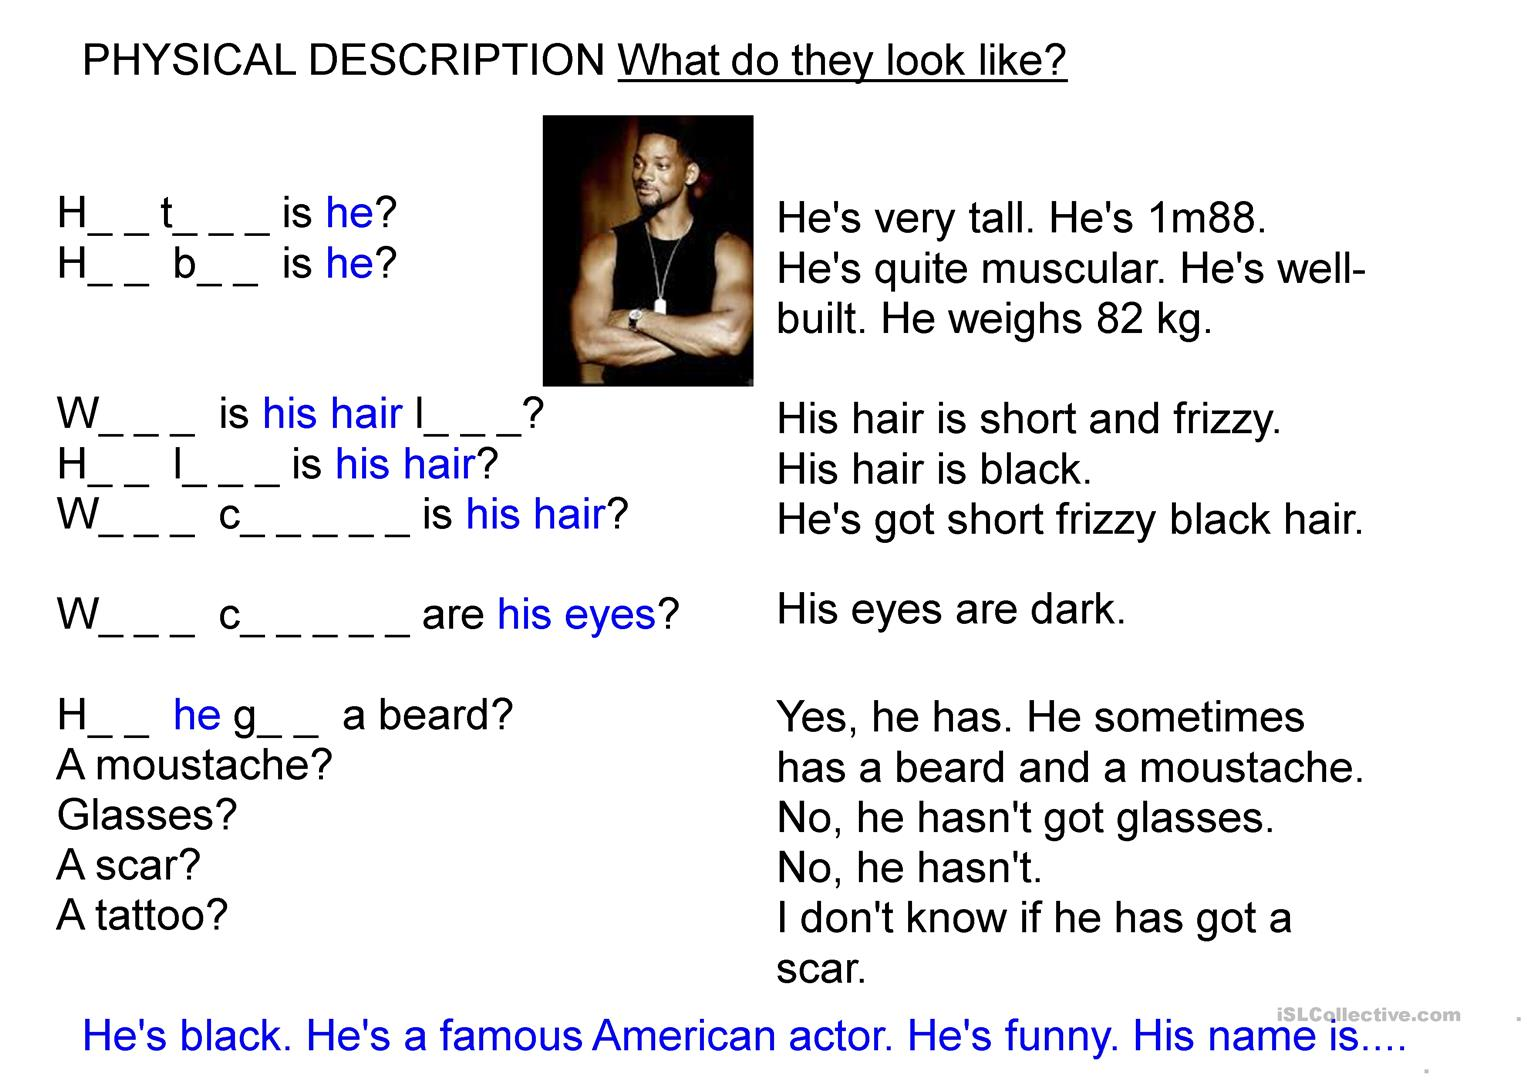 Physical Description Guessing Game